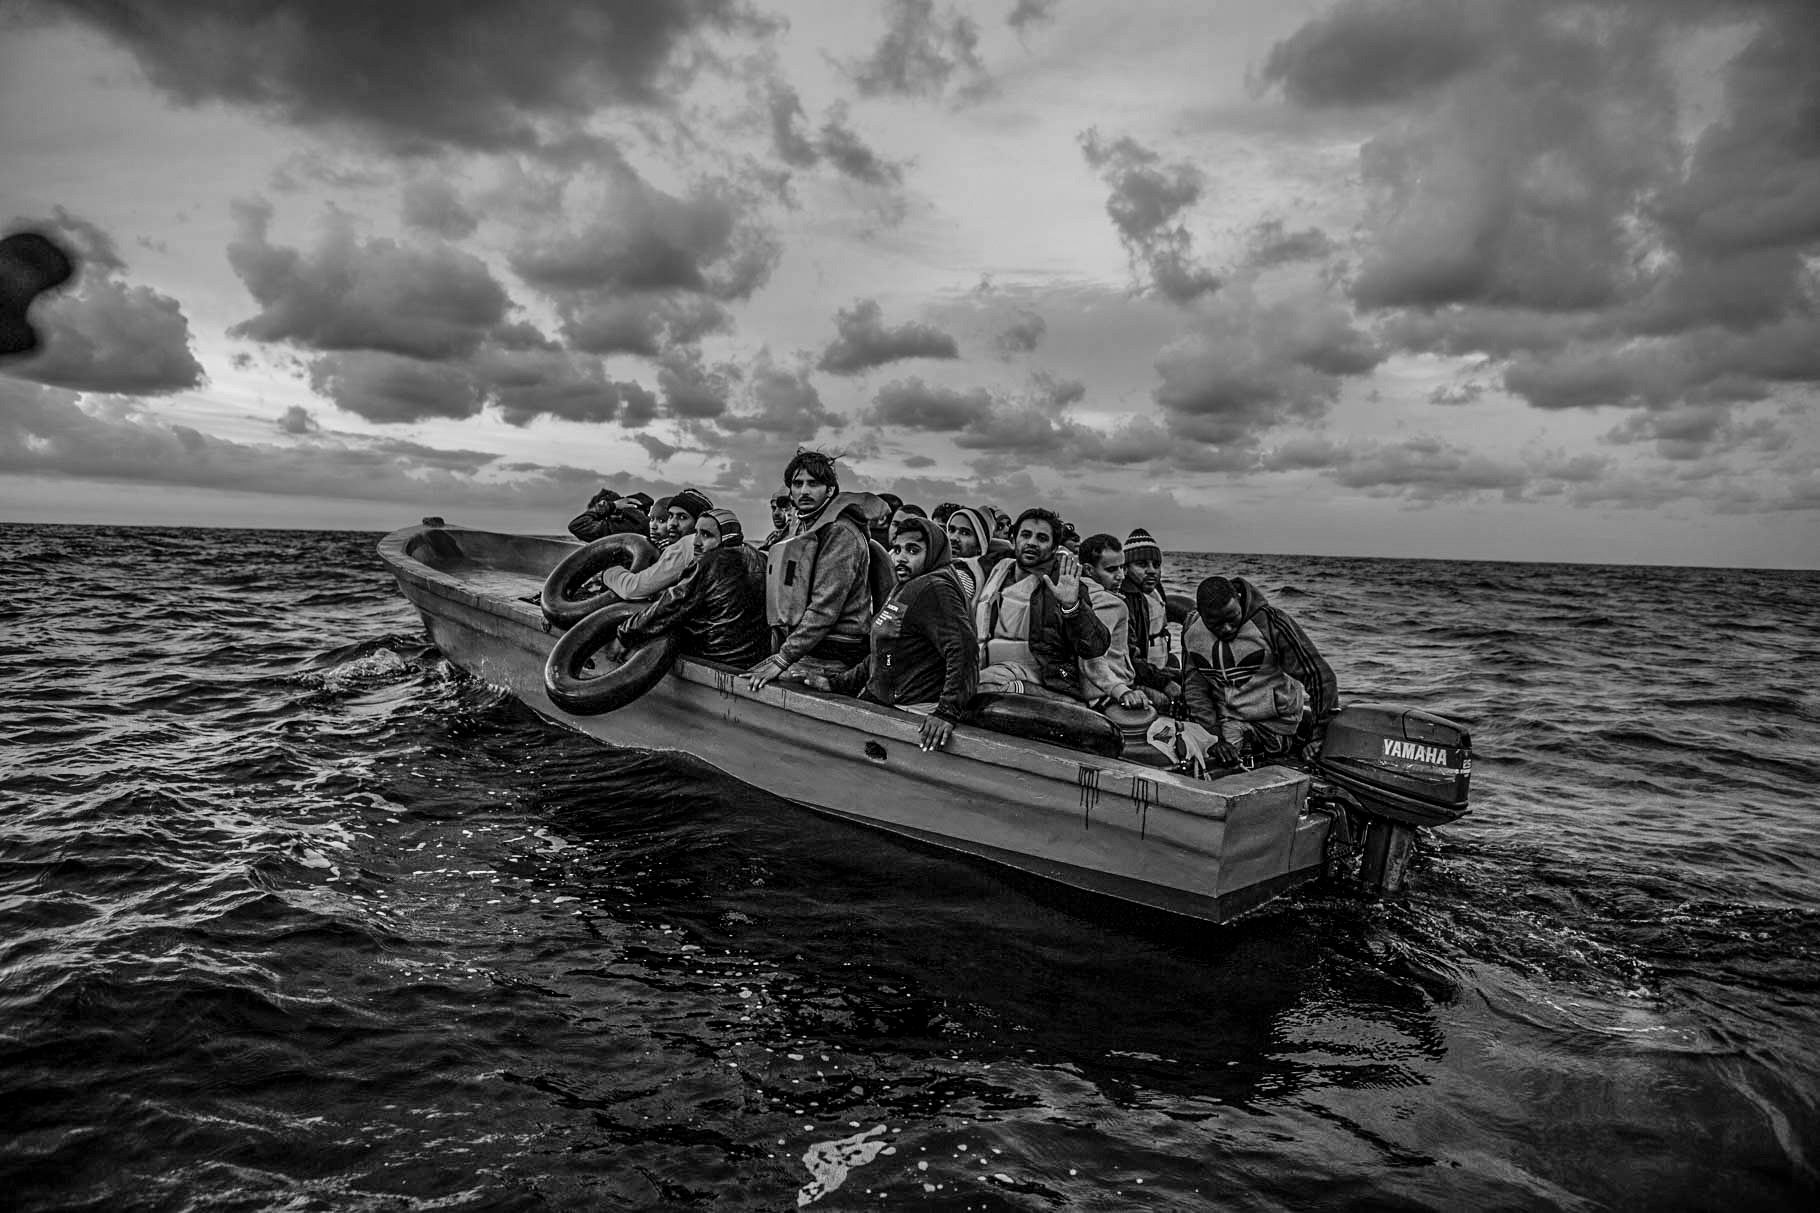 At dawn, a small wooden boat carrying 21 Bangladeshis and one Congolese is spotted drifting in international waters by Migrant Offshore Aid Station. The engine had broken down, and the migrants, who had set out before midnight from Libya, had been floating without direction or means of communication throughout the night. © Jason Florio/MOAS. Photojournalism Series Winner, Magnum Photography Awards 2017.